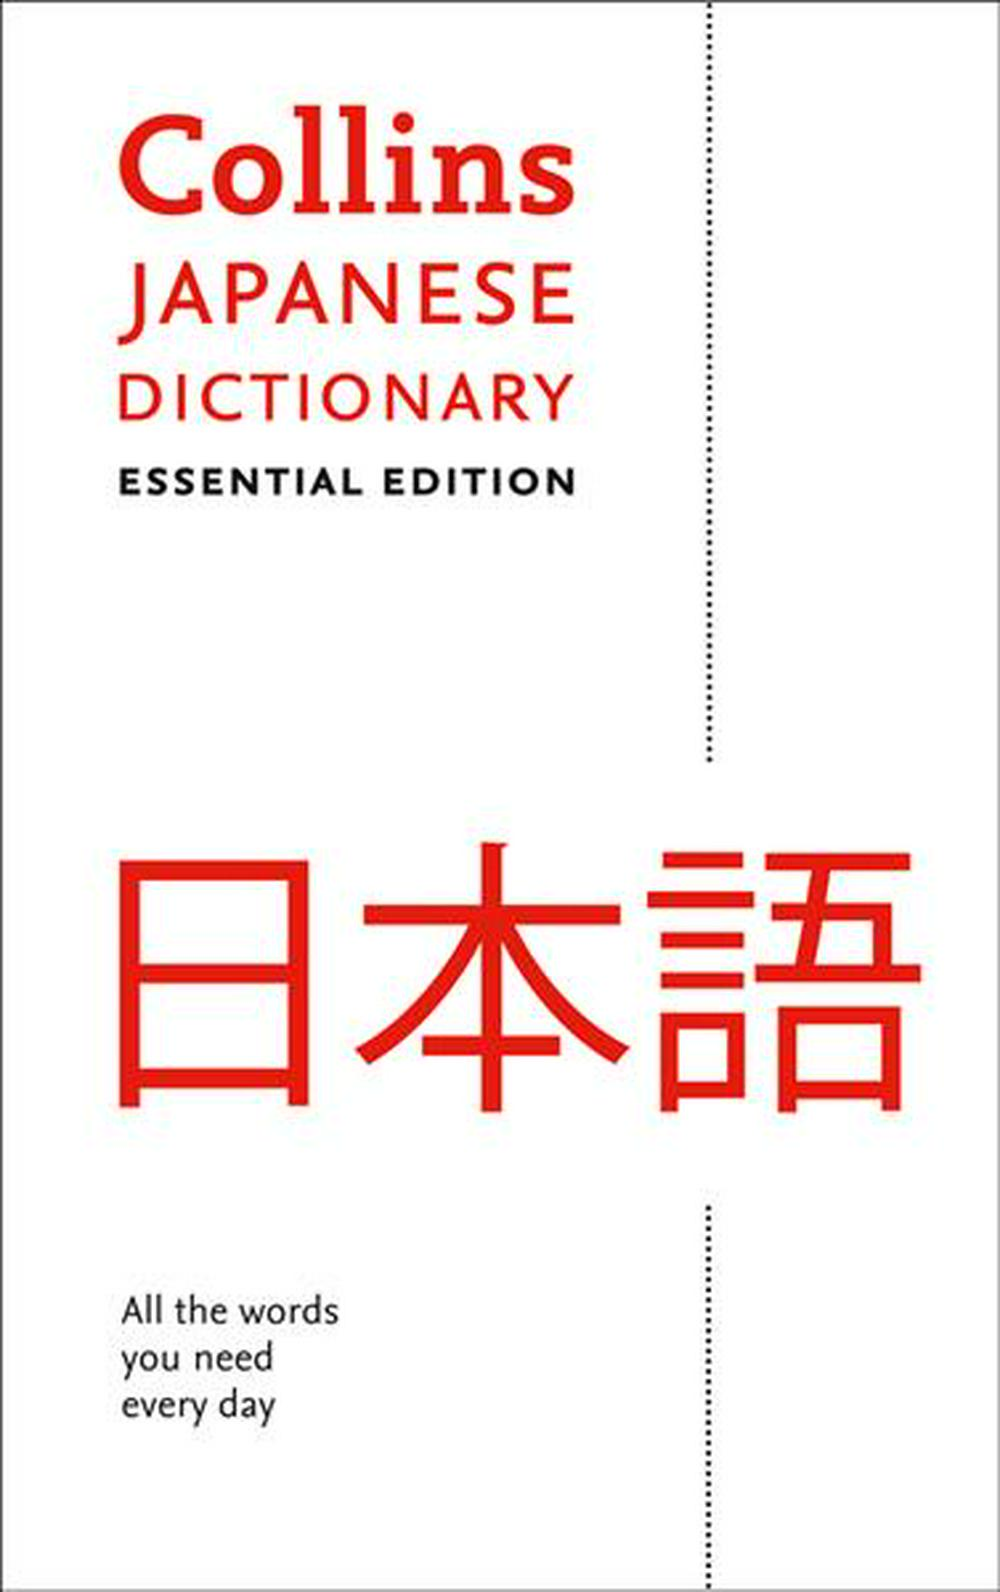 Collins Japanese Dictionary Essential edition: 27,000 translations for everyday use